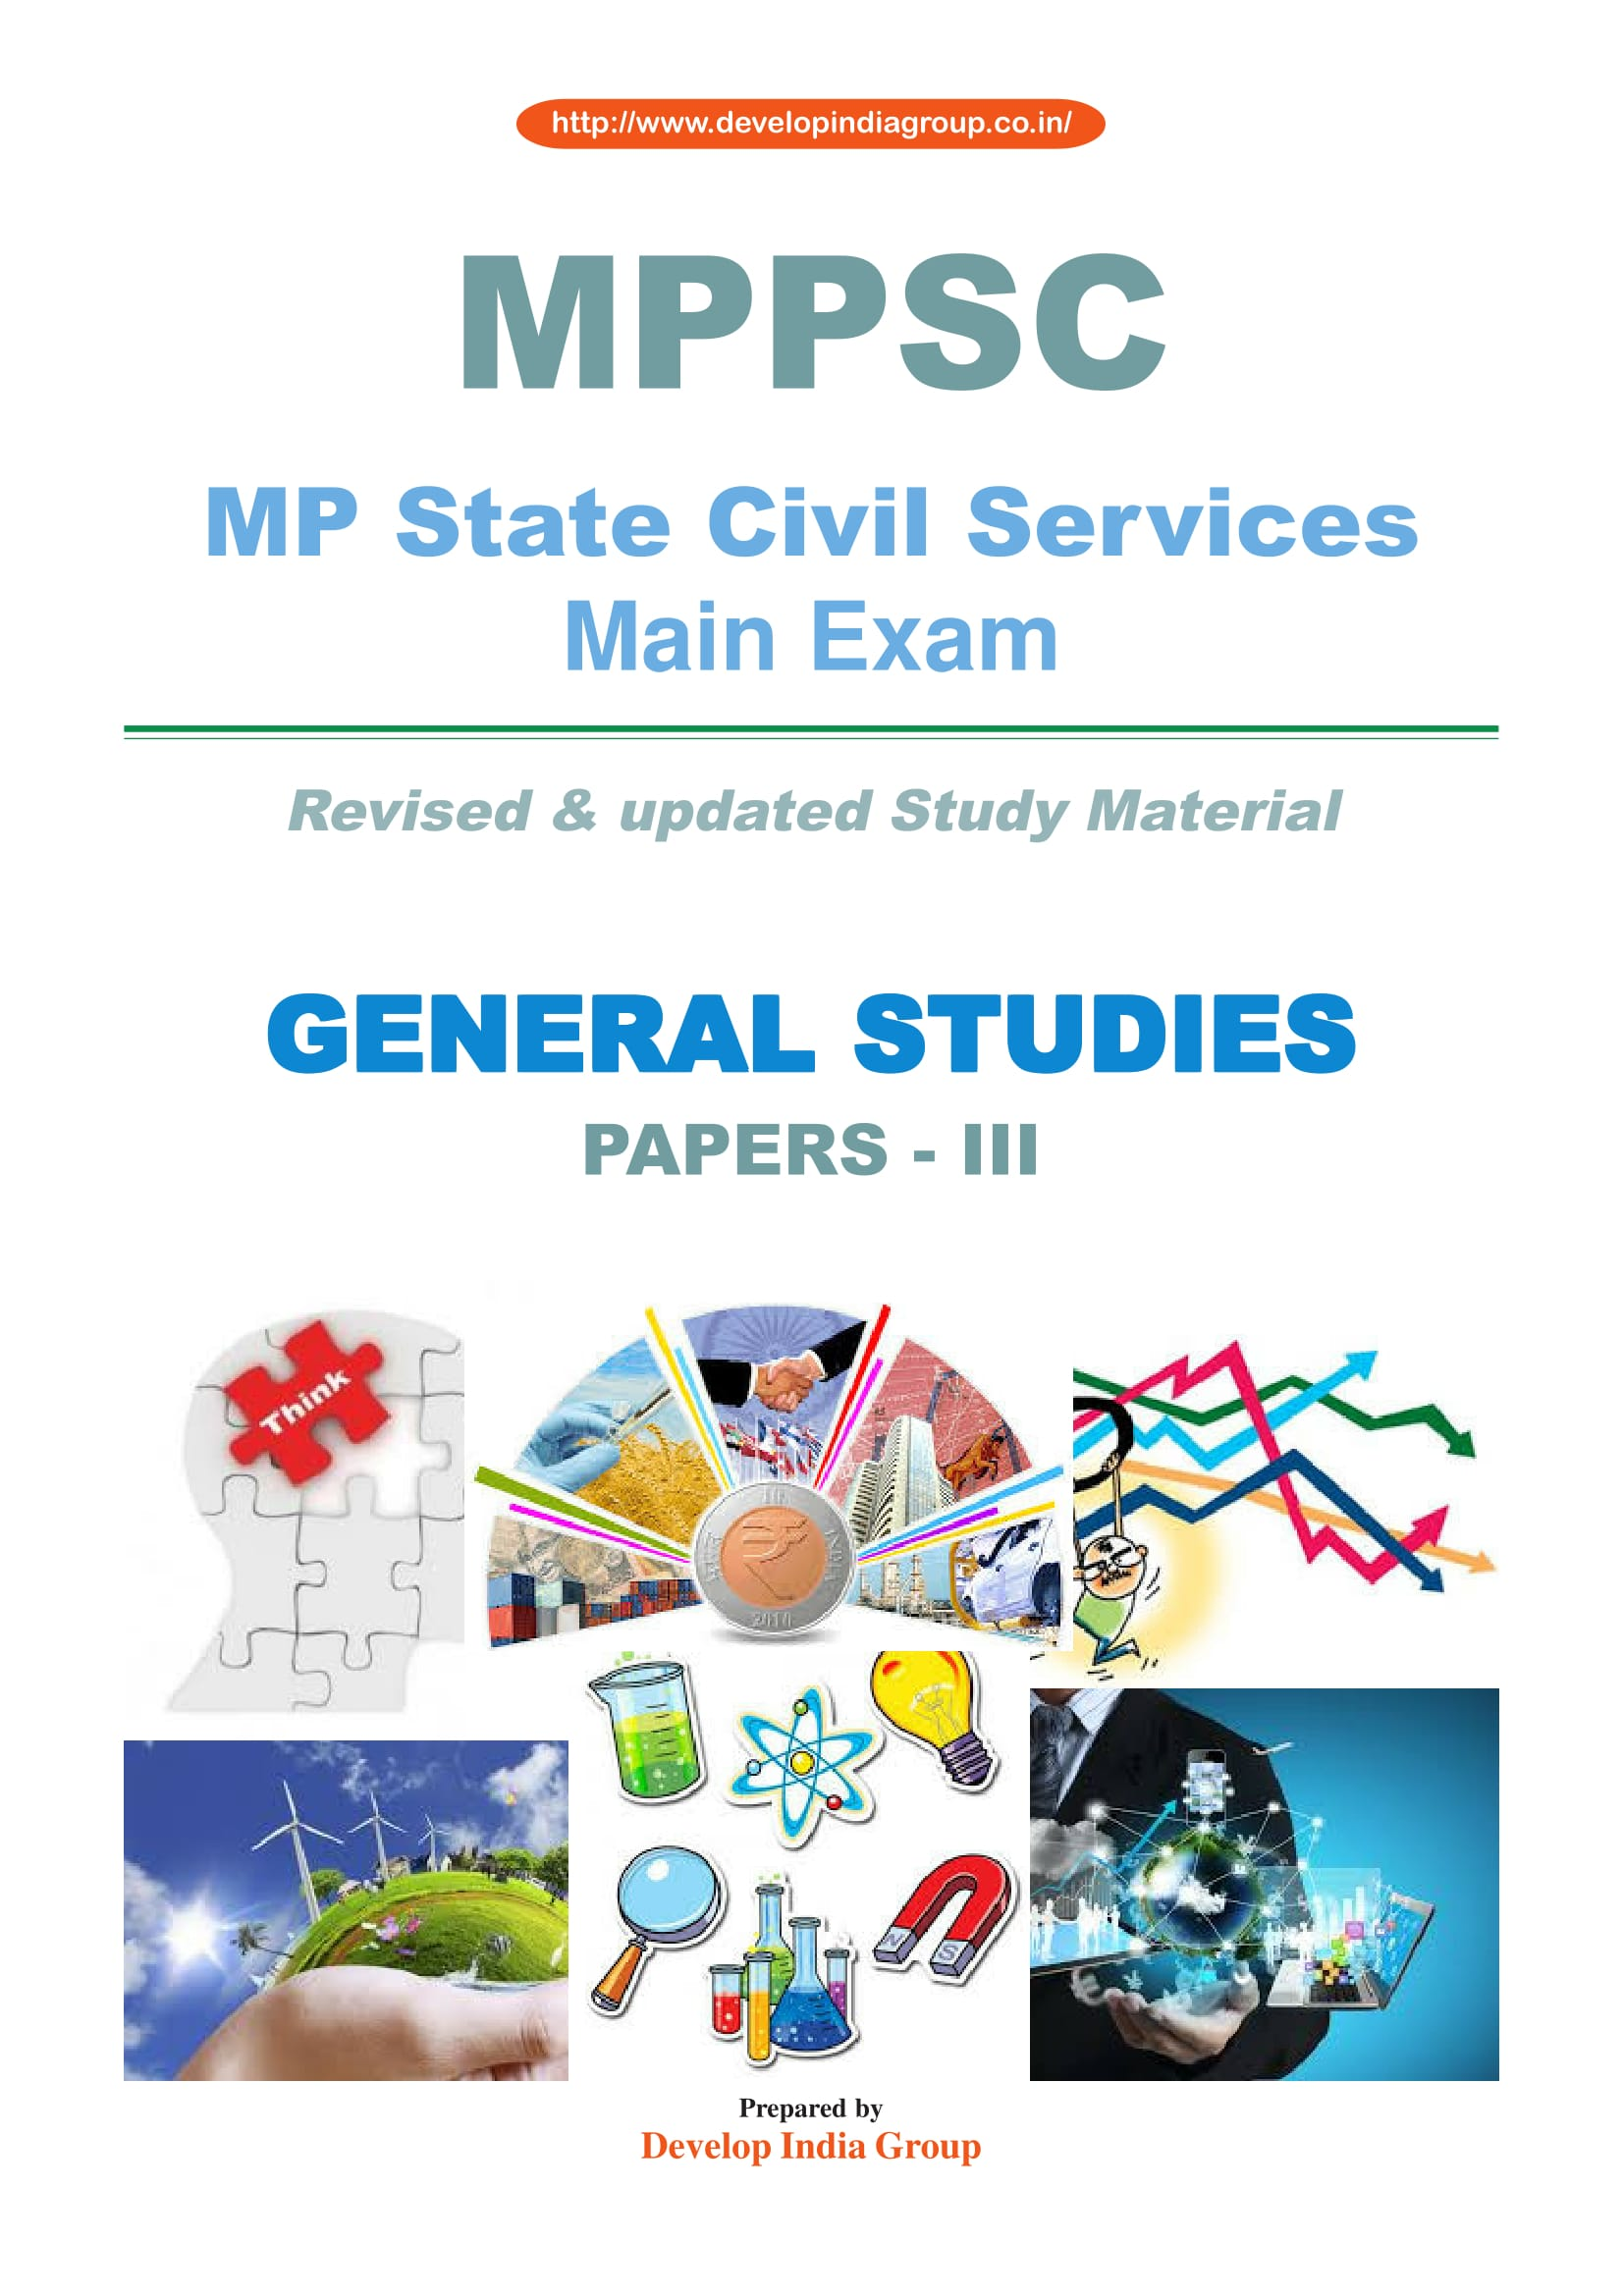 MPPSC Main (revised) Paper III General Studies (English)